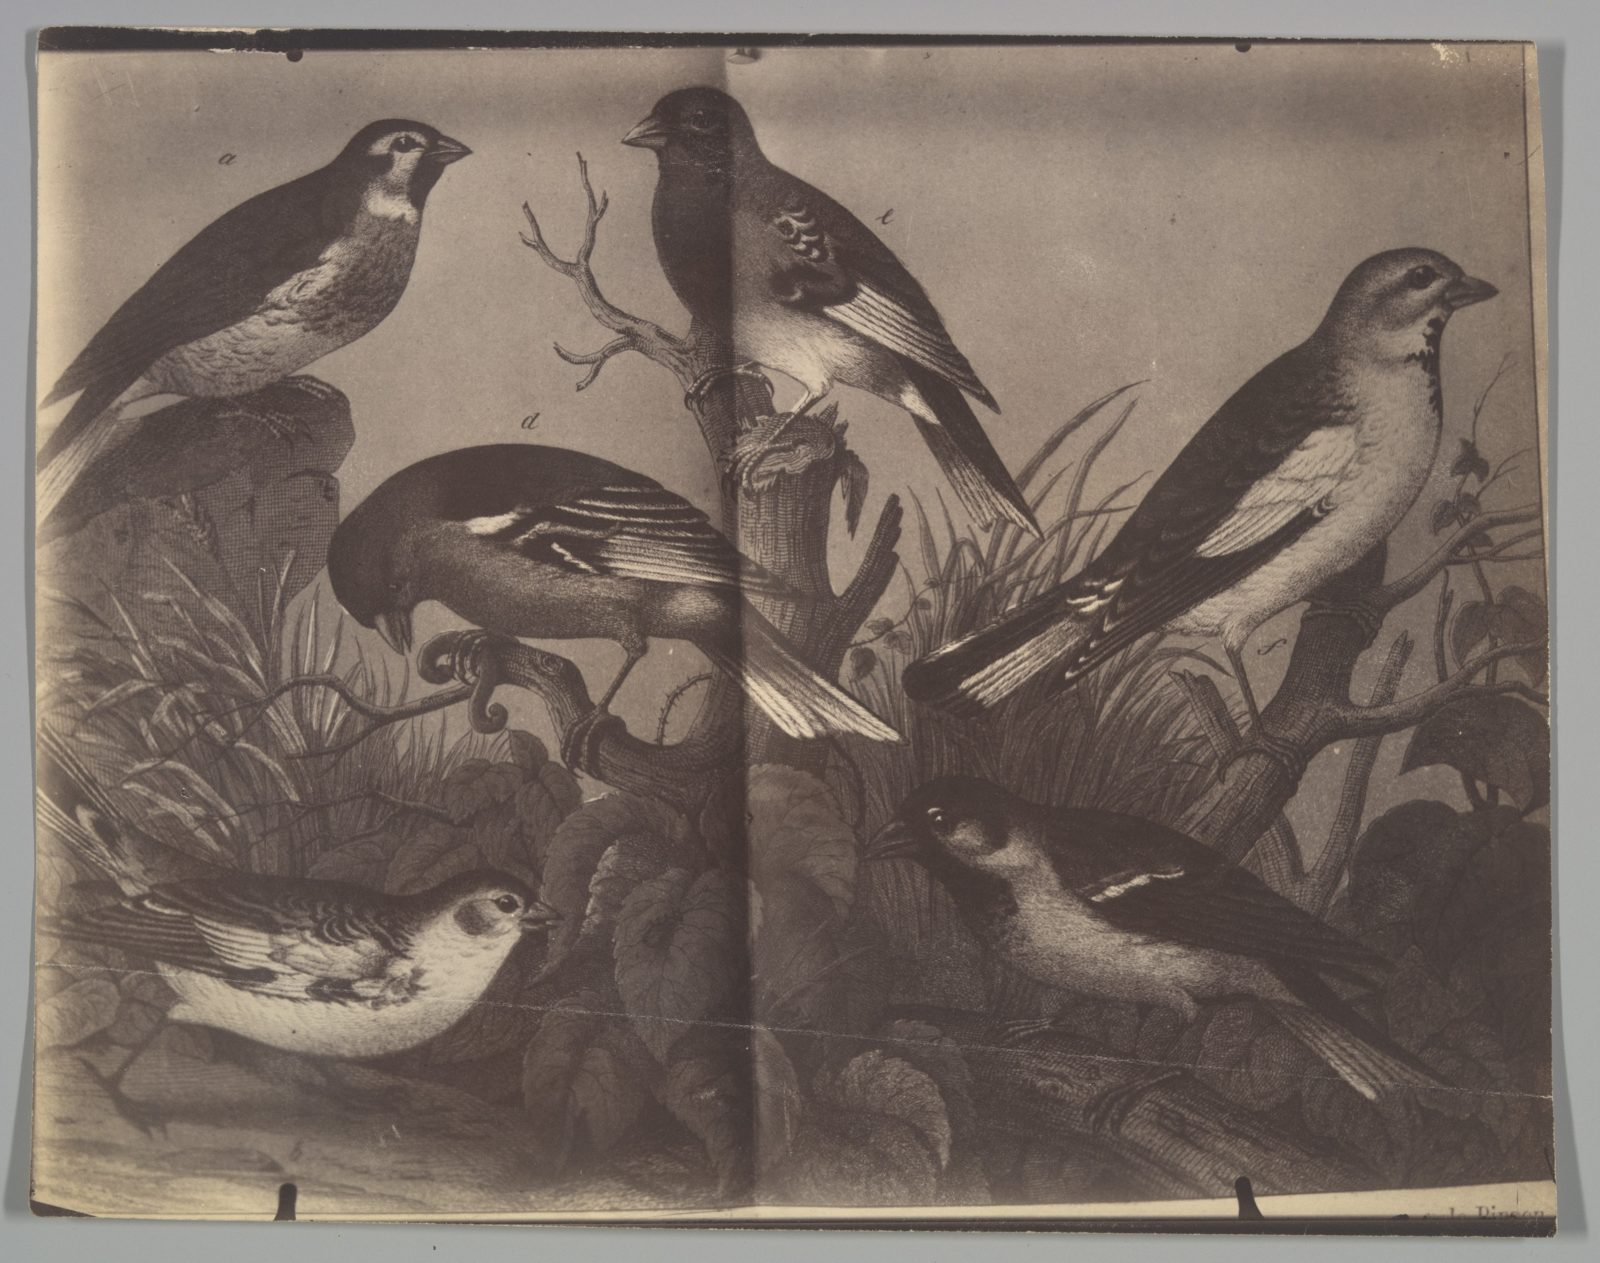 [Spread from an Ornithological Book]